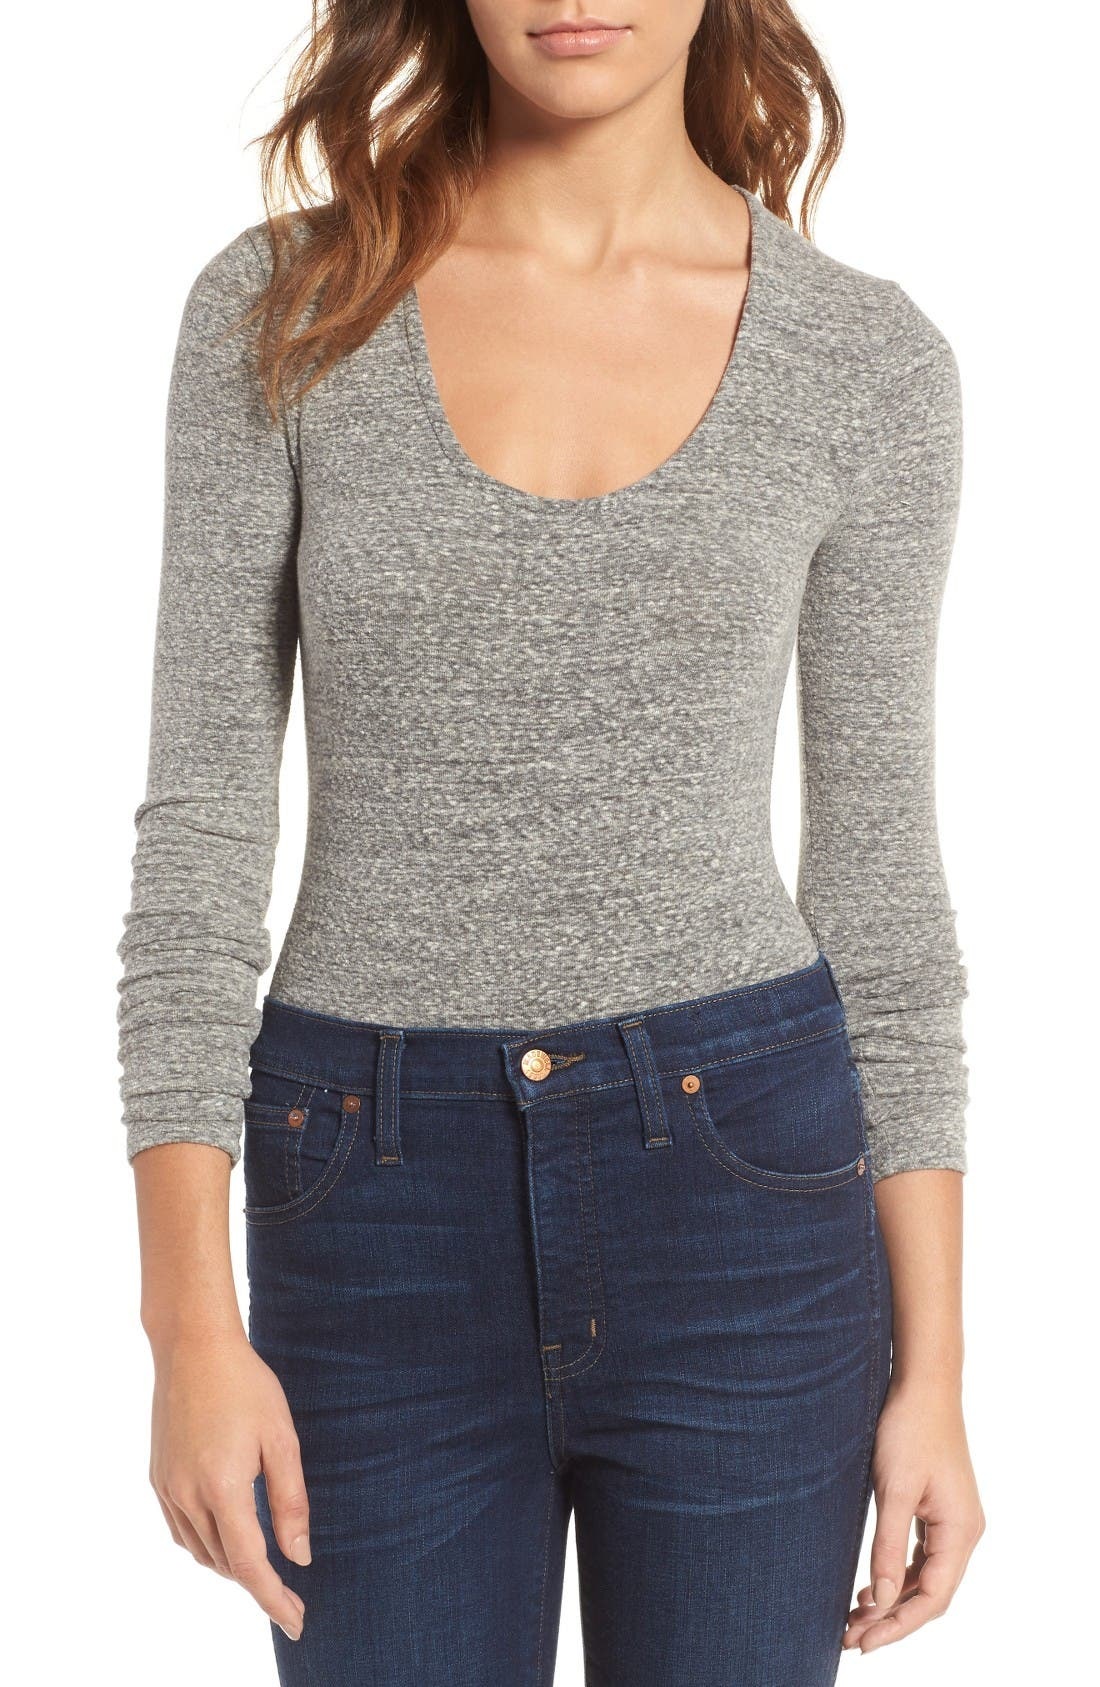 Madewell Song Stretch Jersey Bodysuit